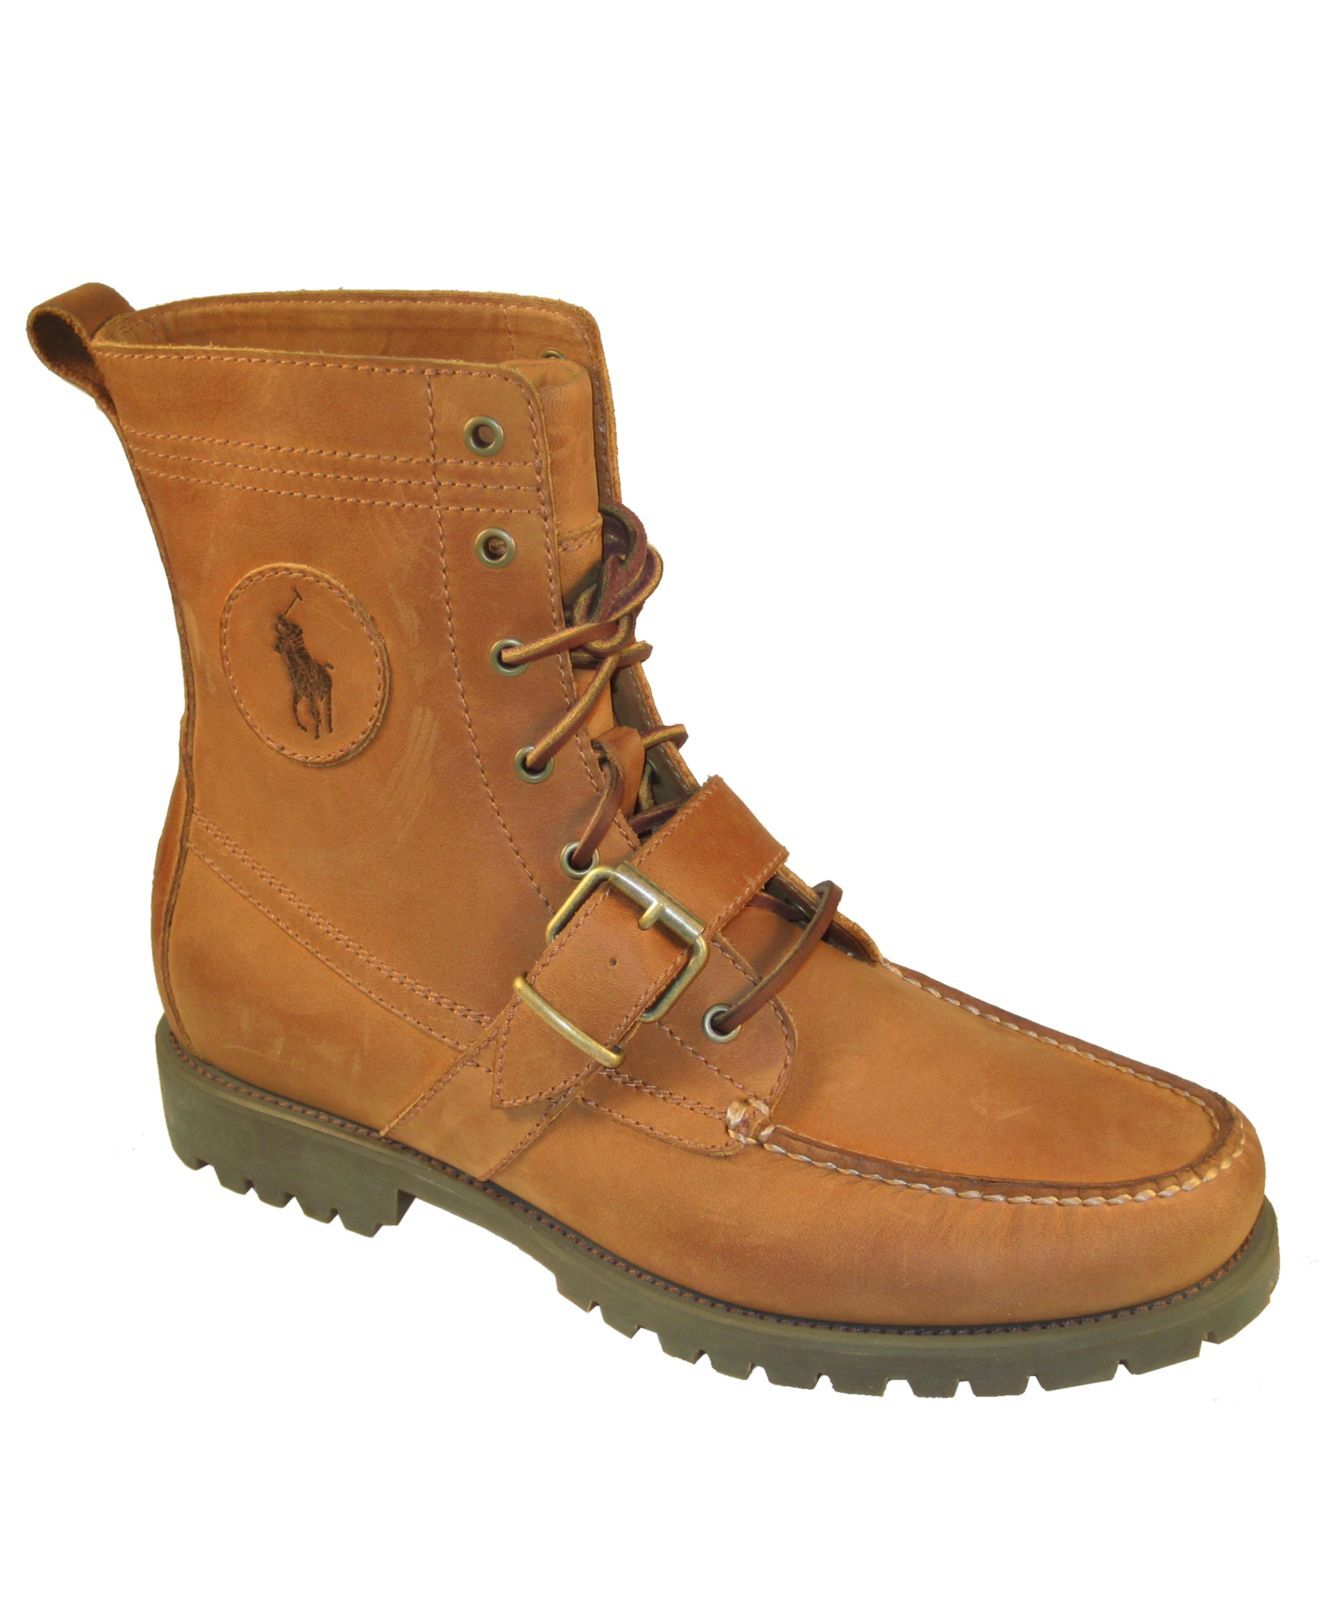 Polo Ralph Lauren Ranger Boots A Must For The Polo Heads